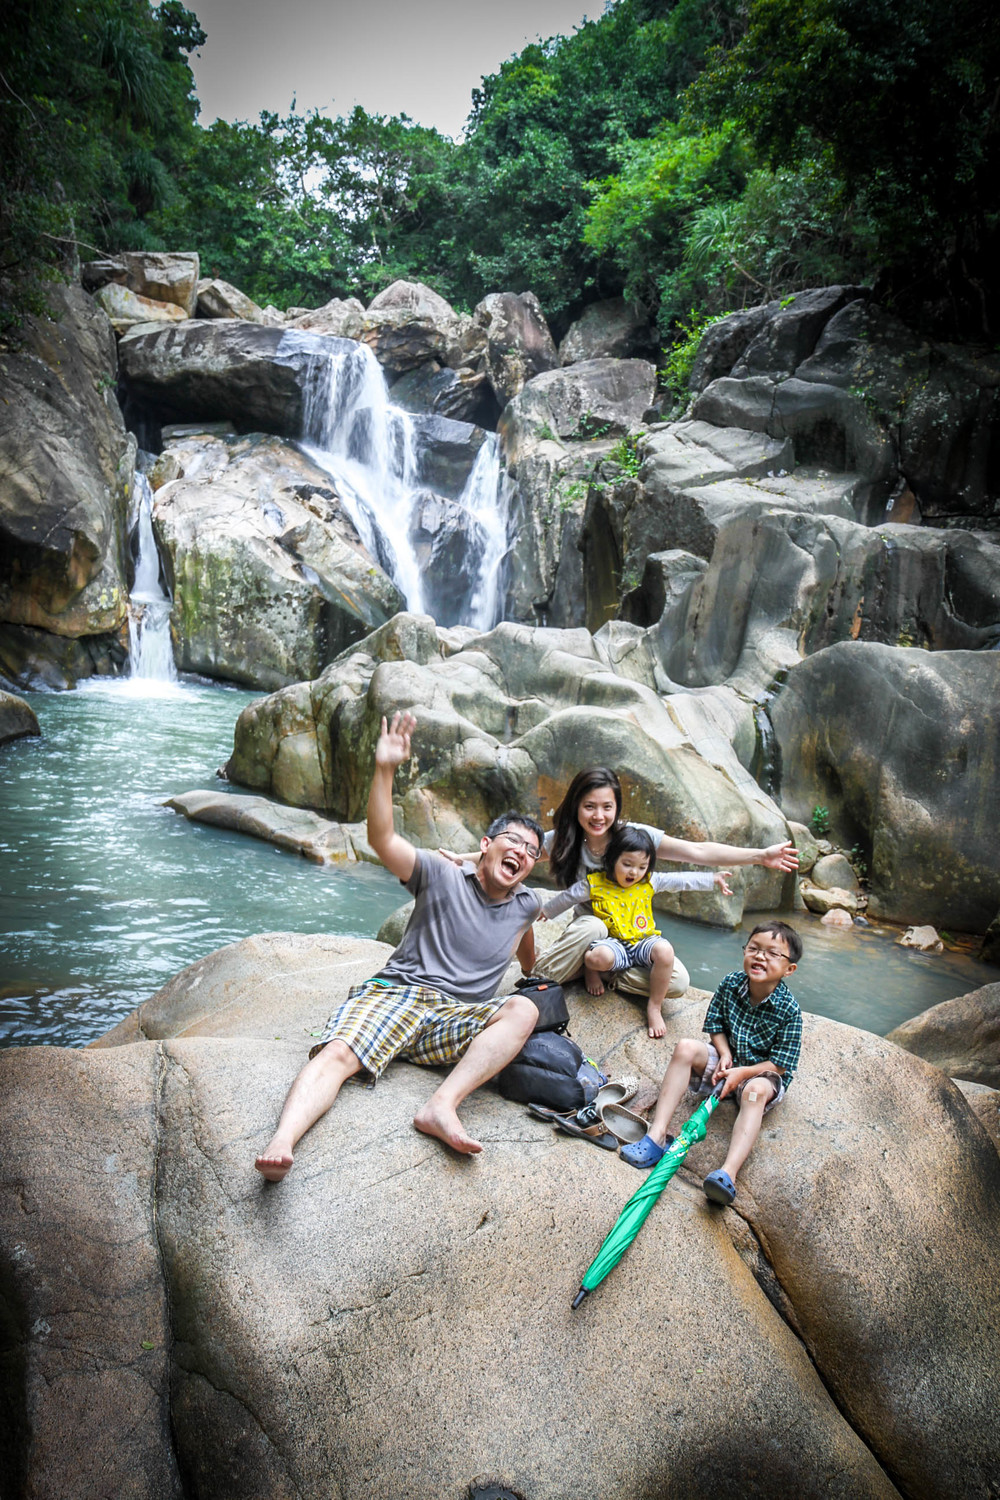 One of the three waterfalls at Ba Ho Falls in Nha Trang